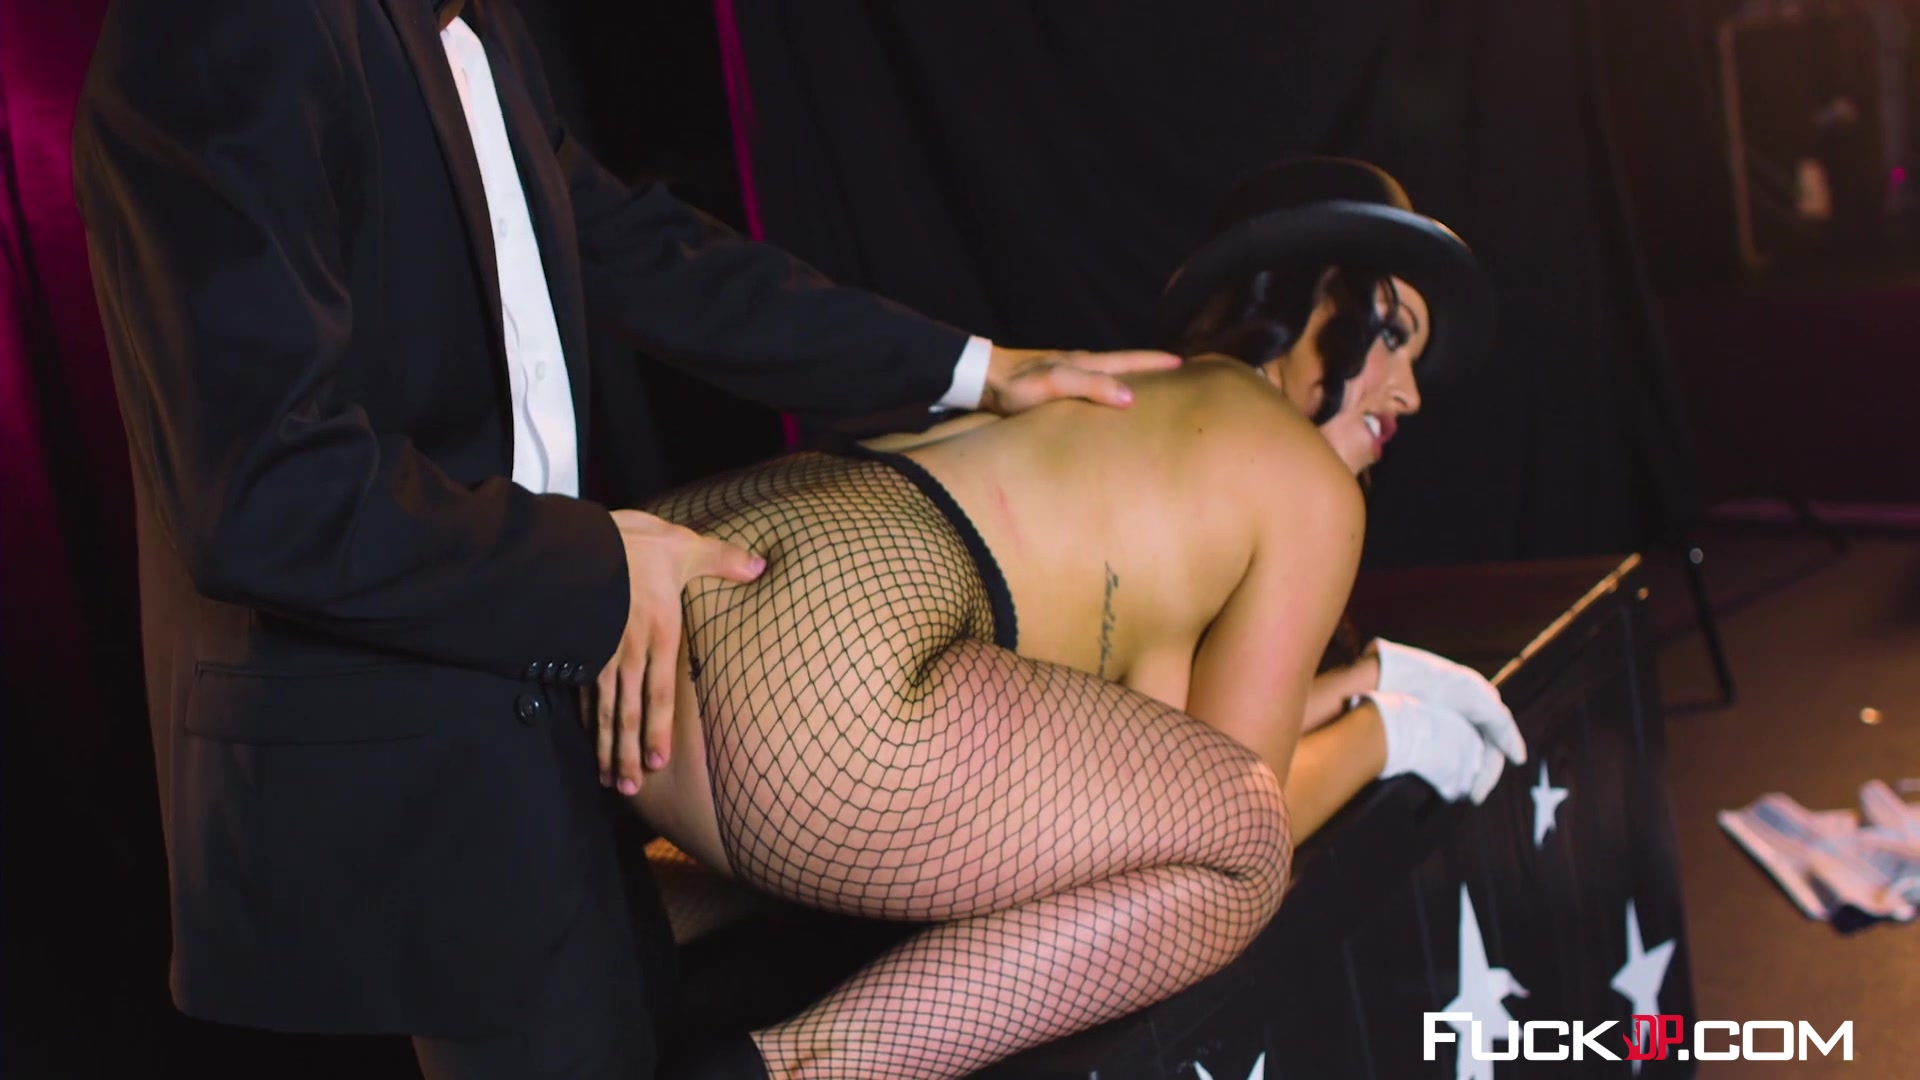 Adult sex Galleries I fucked my wifes drunk sister